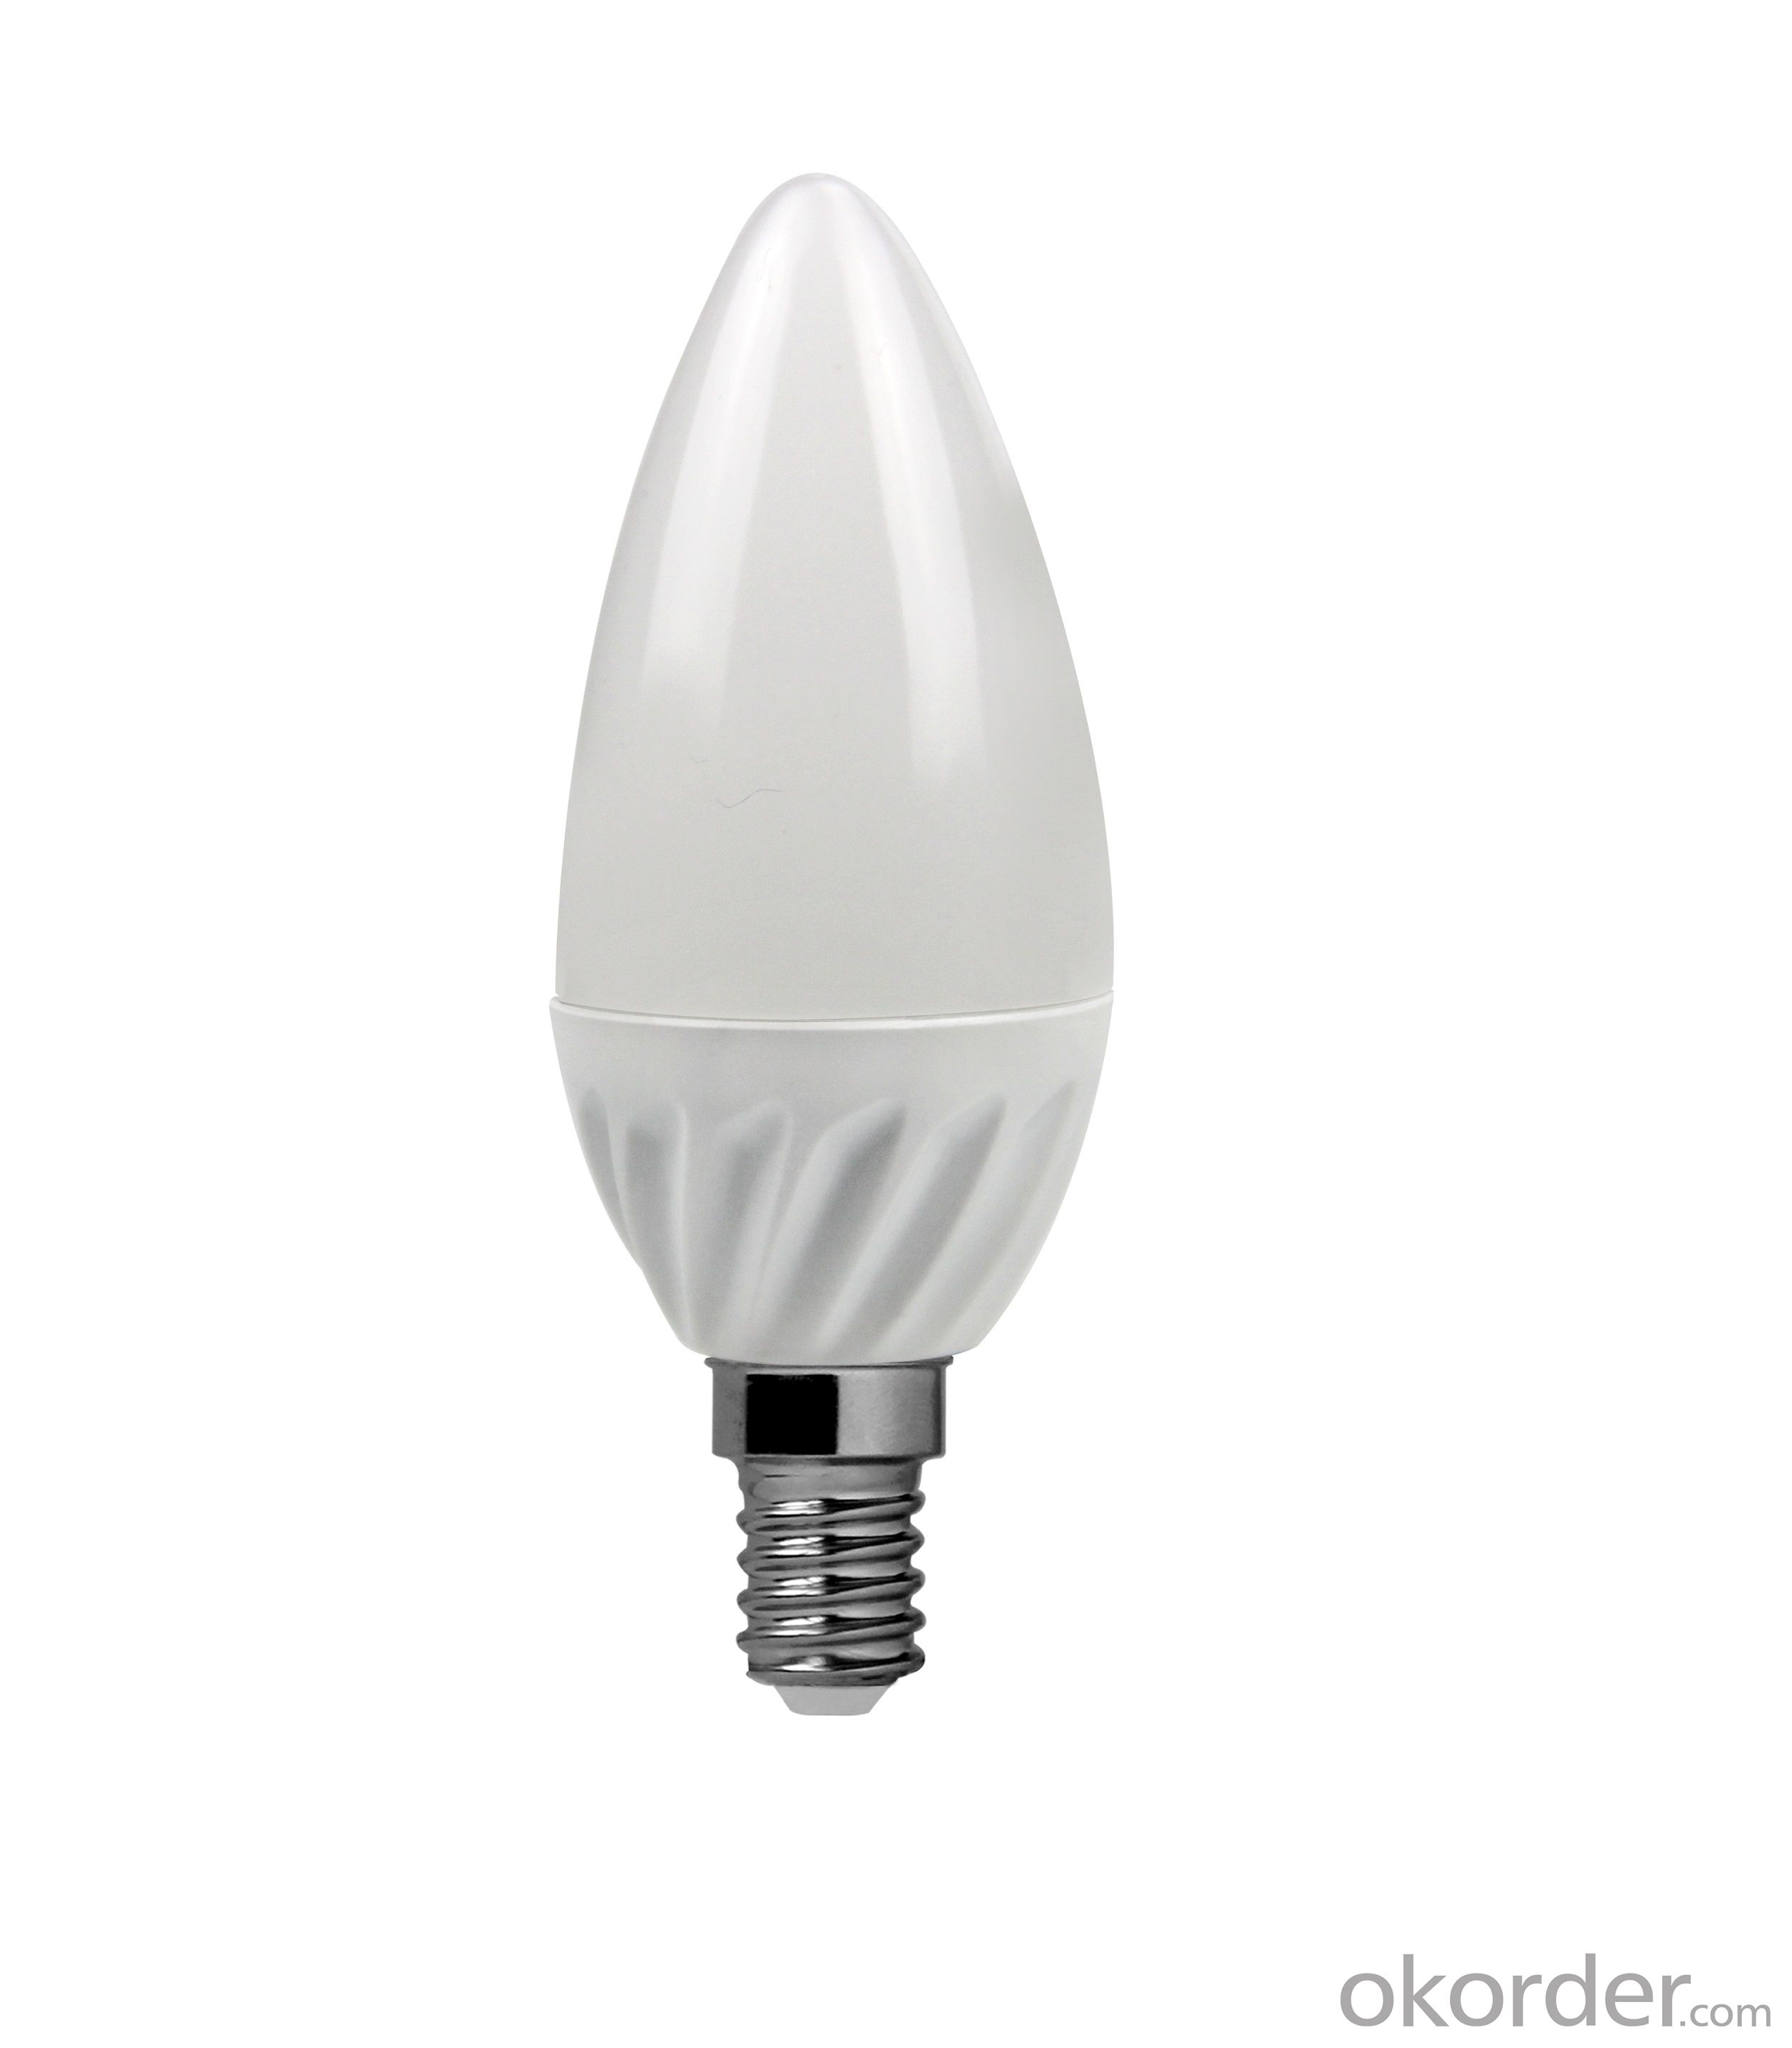 LED Bulb Light E14 C37 5000K 9W 800 Lumen Non Dimmable